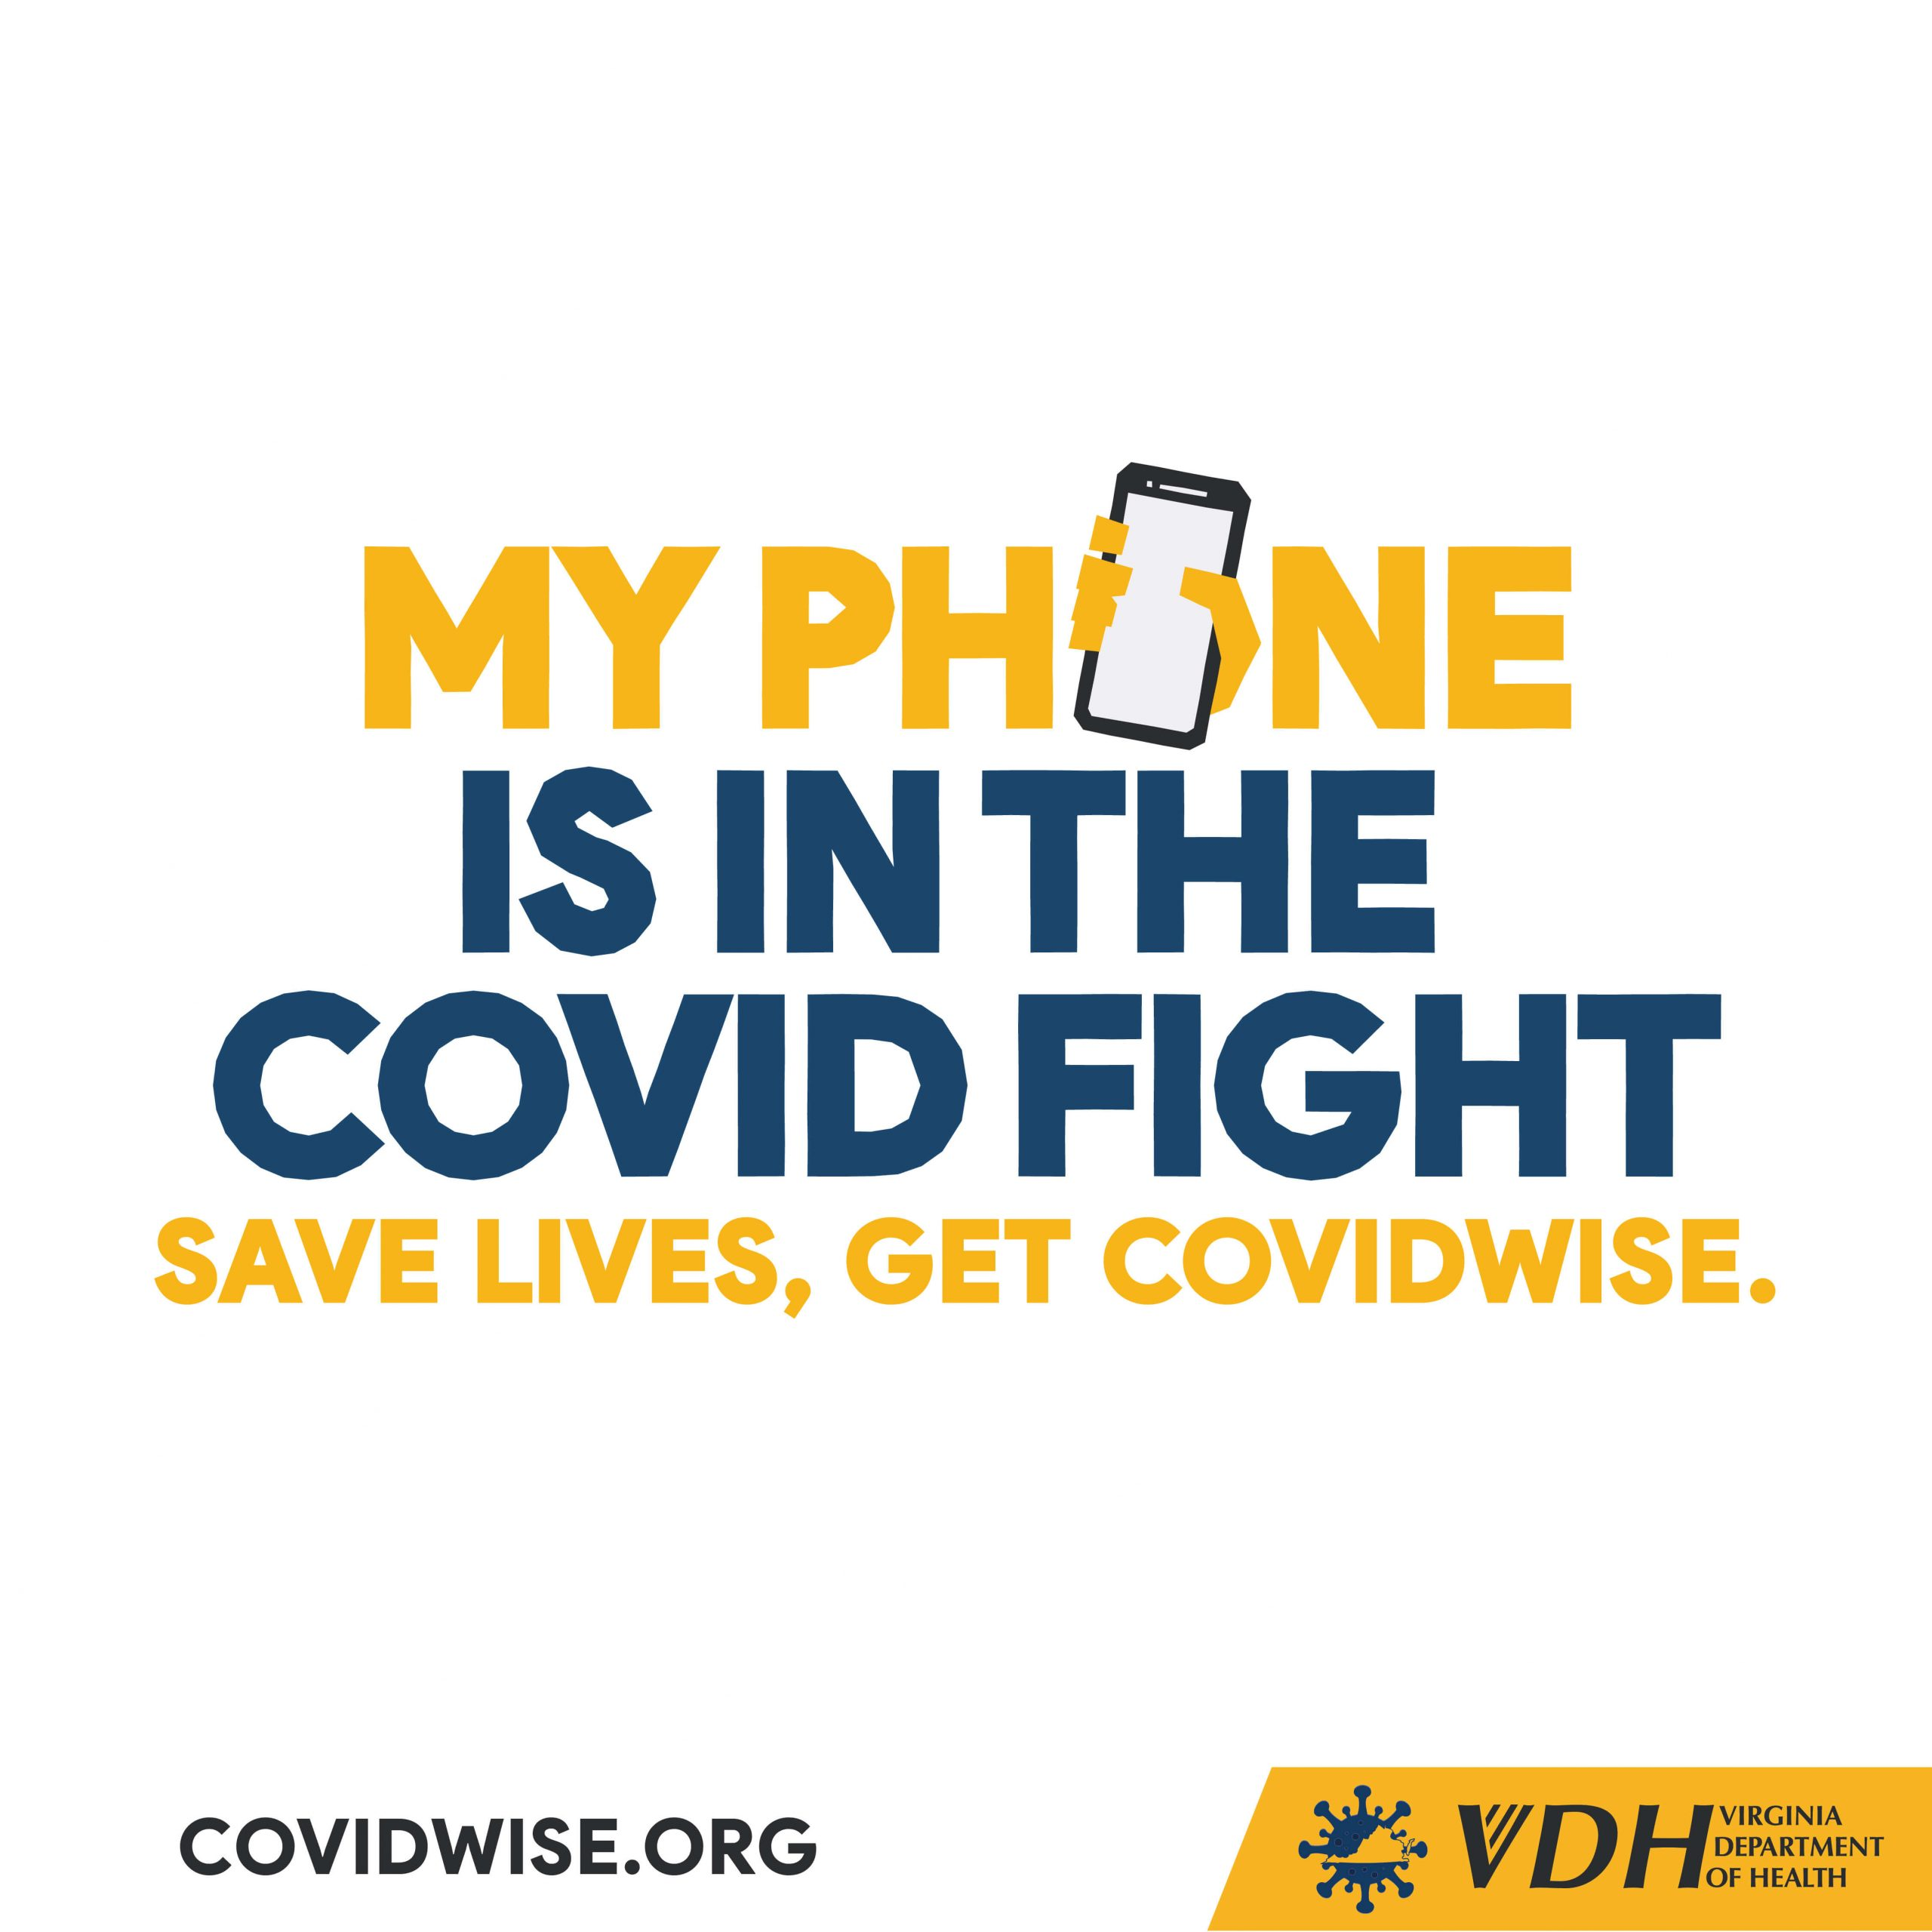 COVIDWISE - My Phone is in the COVID Fight